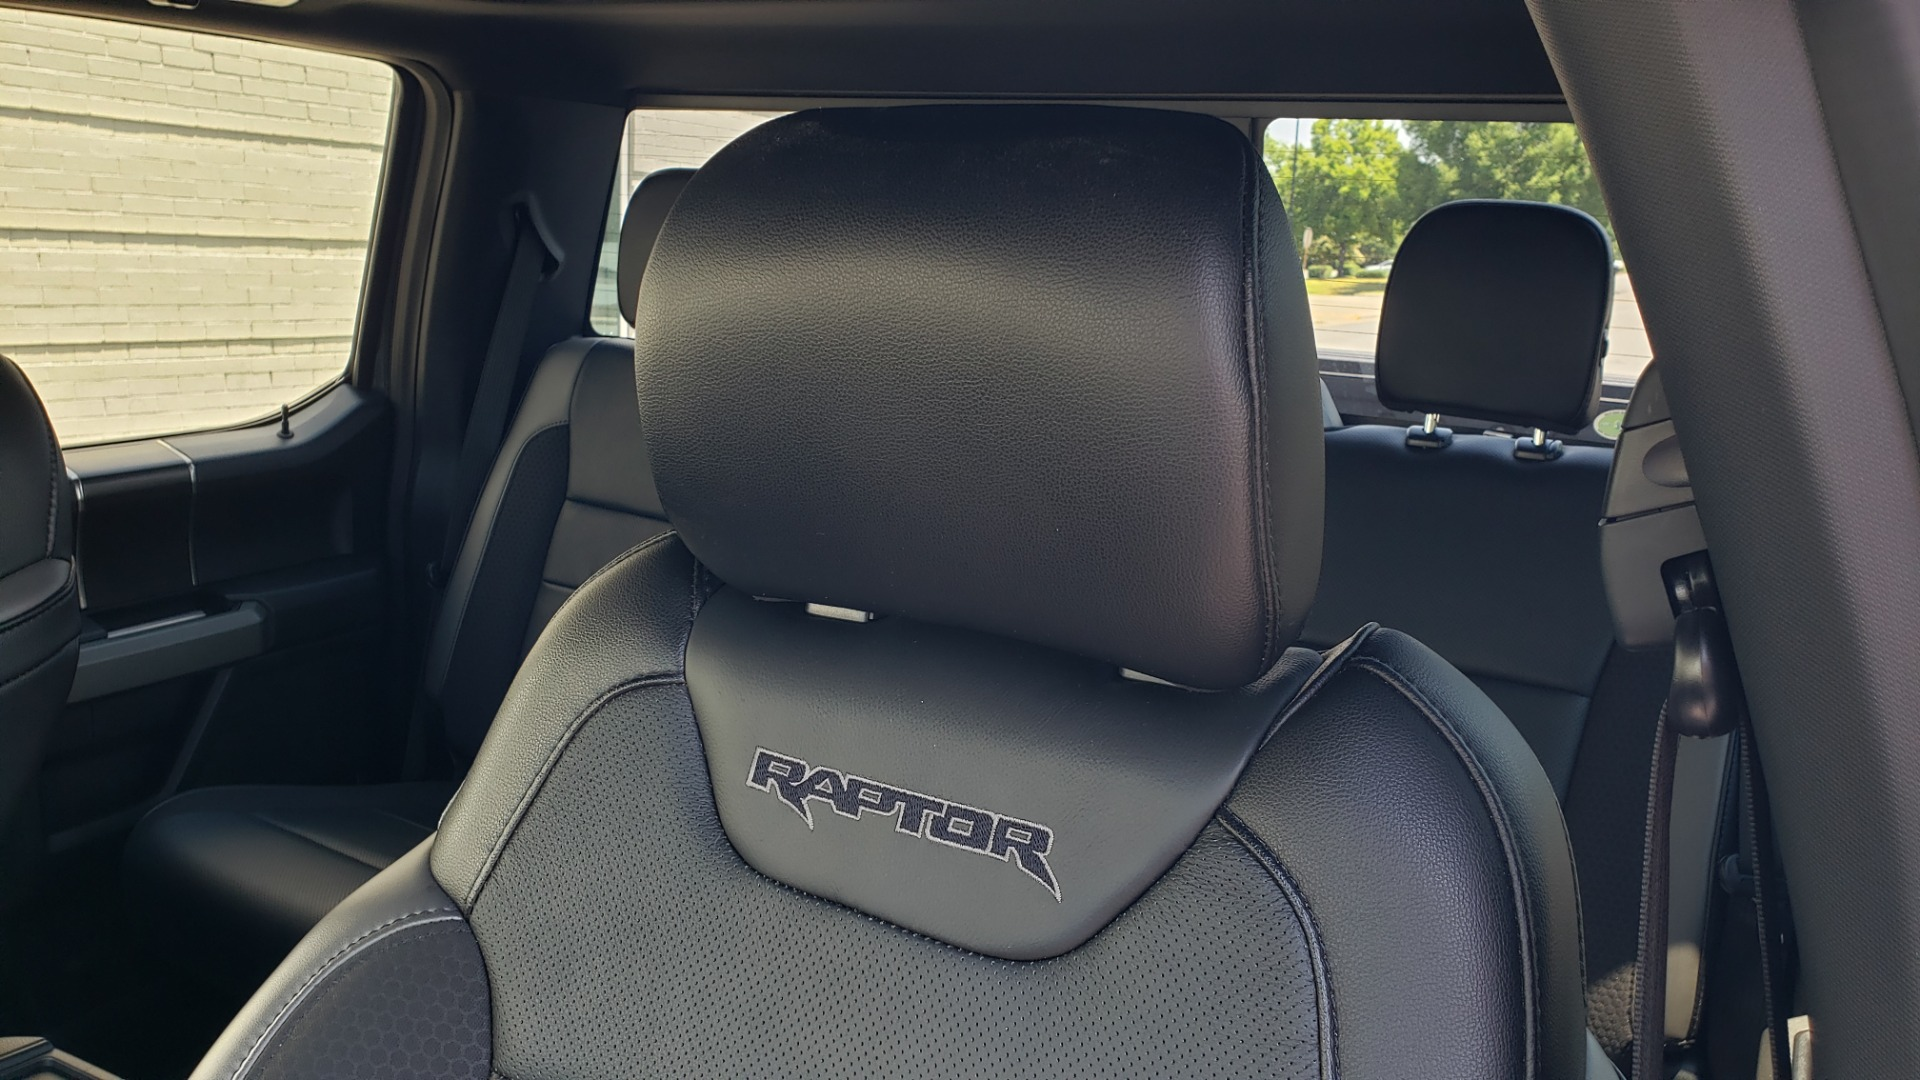 Used 2020 Ford F-150 RAPTOR 4X4 SUPERCREW / 3.5L ECOBOOST / 10-SPD AUTO / SUNROOF / REARVIEW for sale $82,500 at Formula Imports in Charlotte NC 28227 14